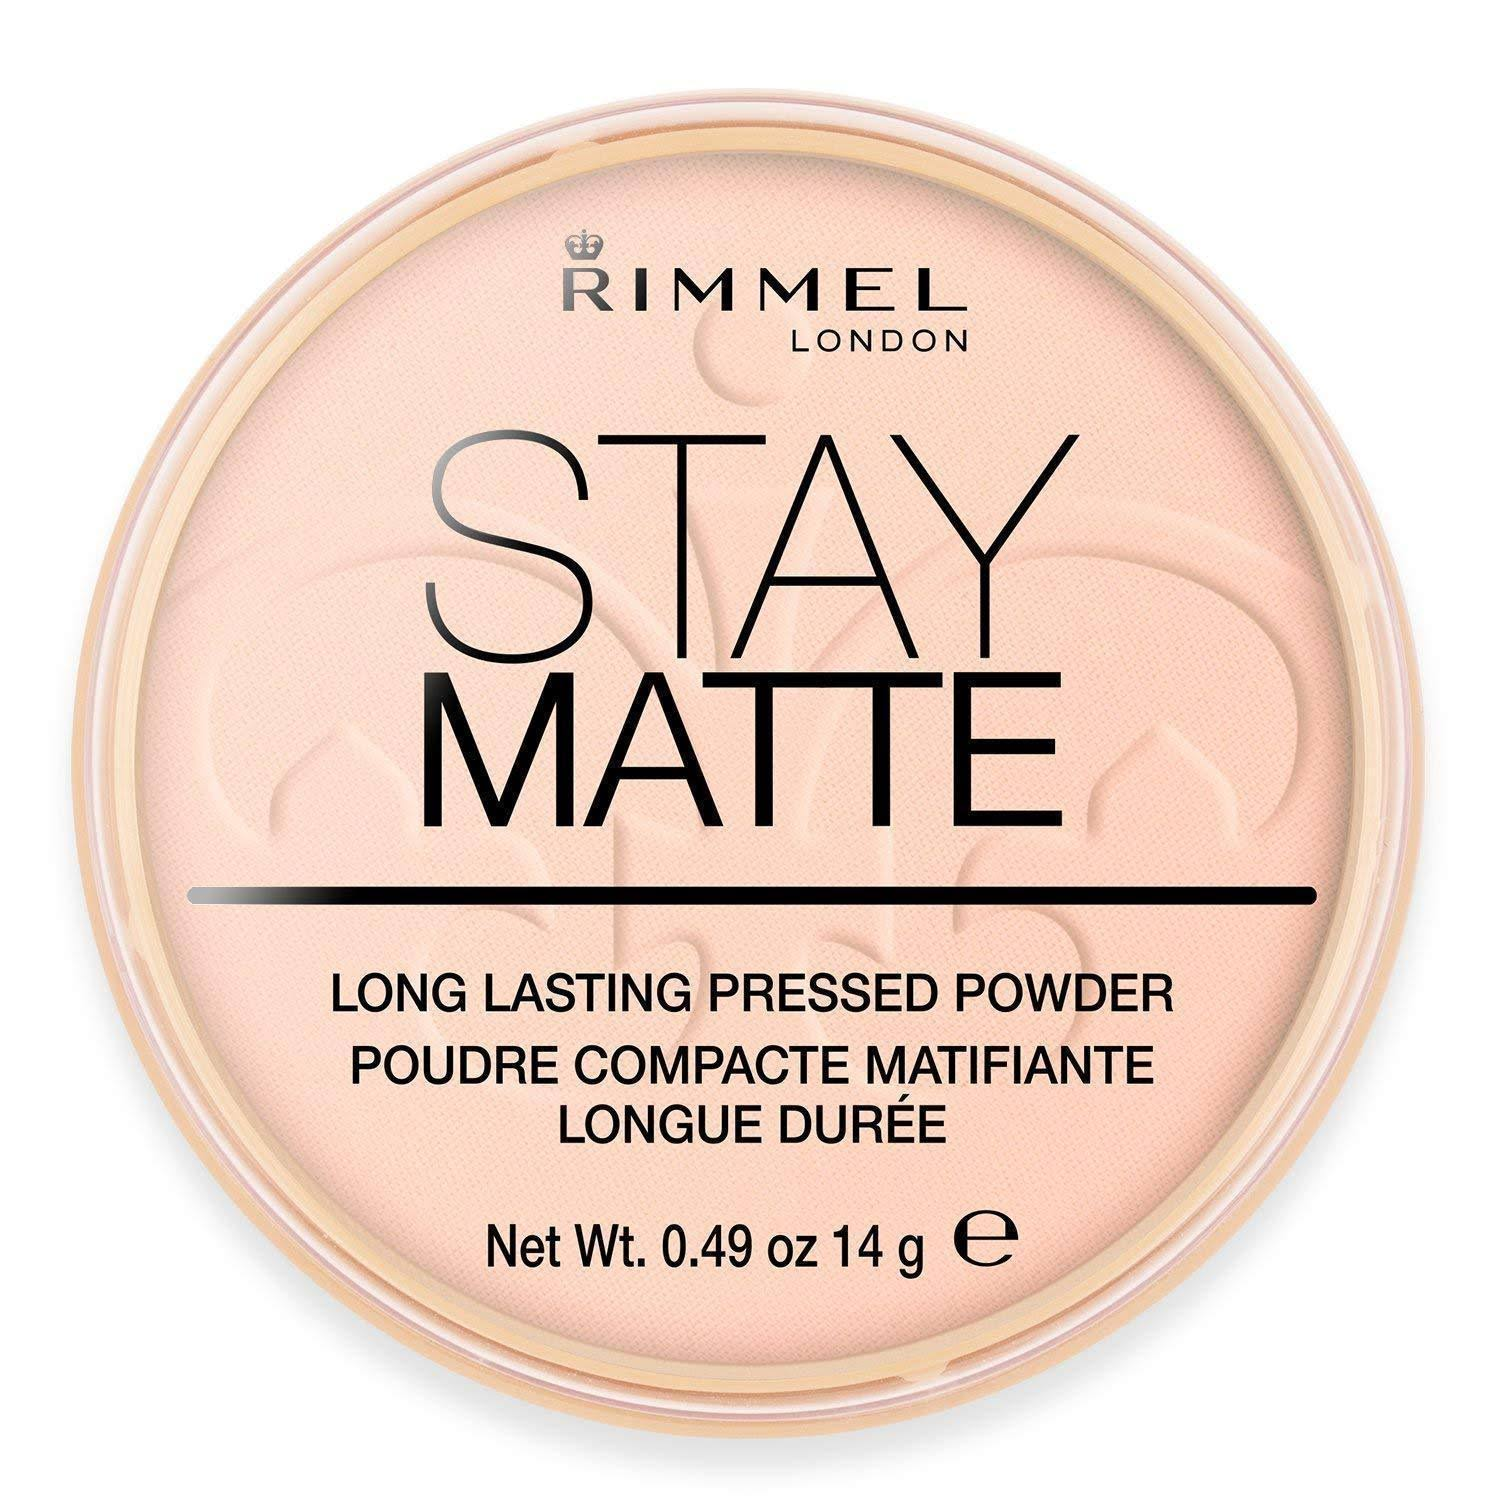 Rimmel London Stay Matte Pressed Powder - 002 Pink Blossom